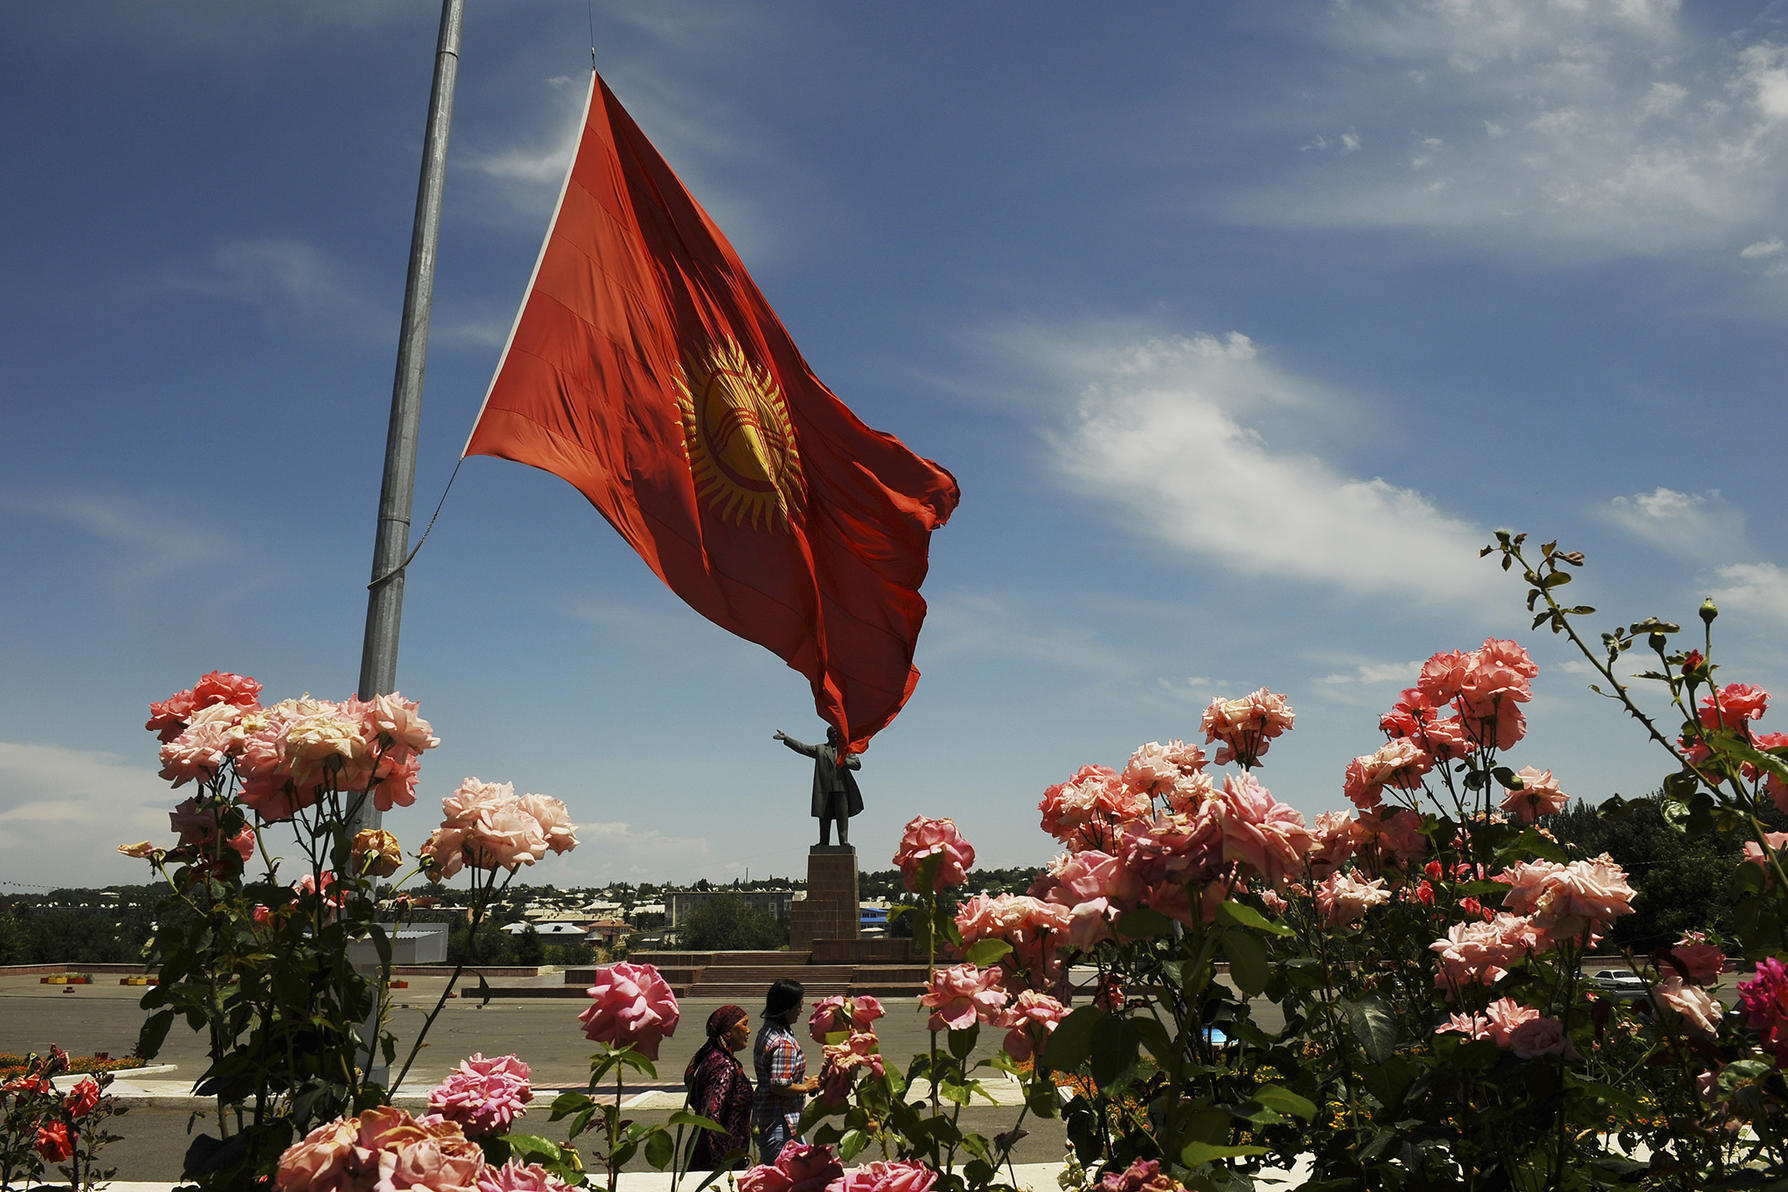 The Kyrgyzstan flag flies at half mast outside the Osh town hall as people walk through the still largely vacant city in Kyrgyzstan, June 19, 2010. (James Hill/The New York Times)